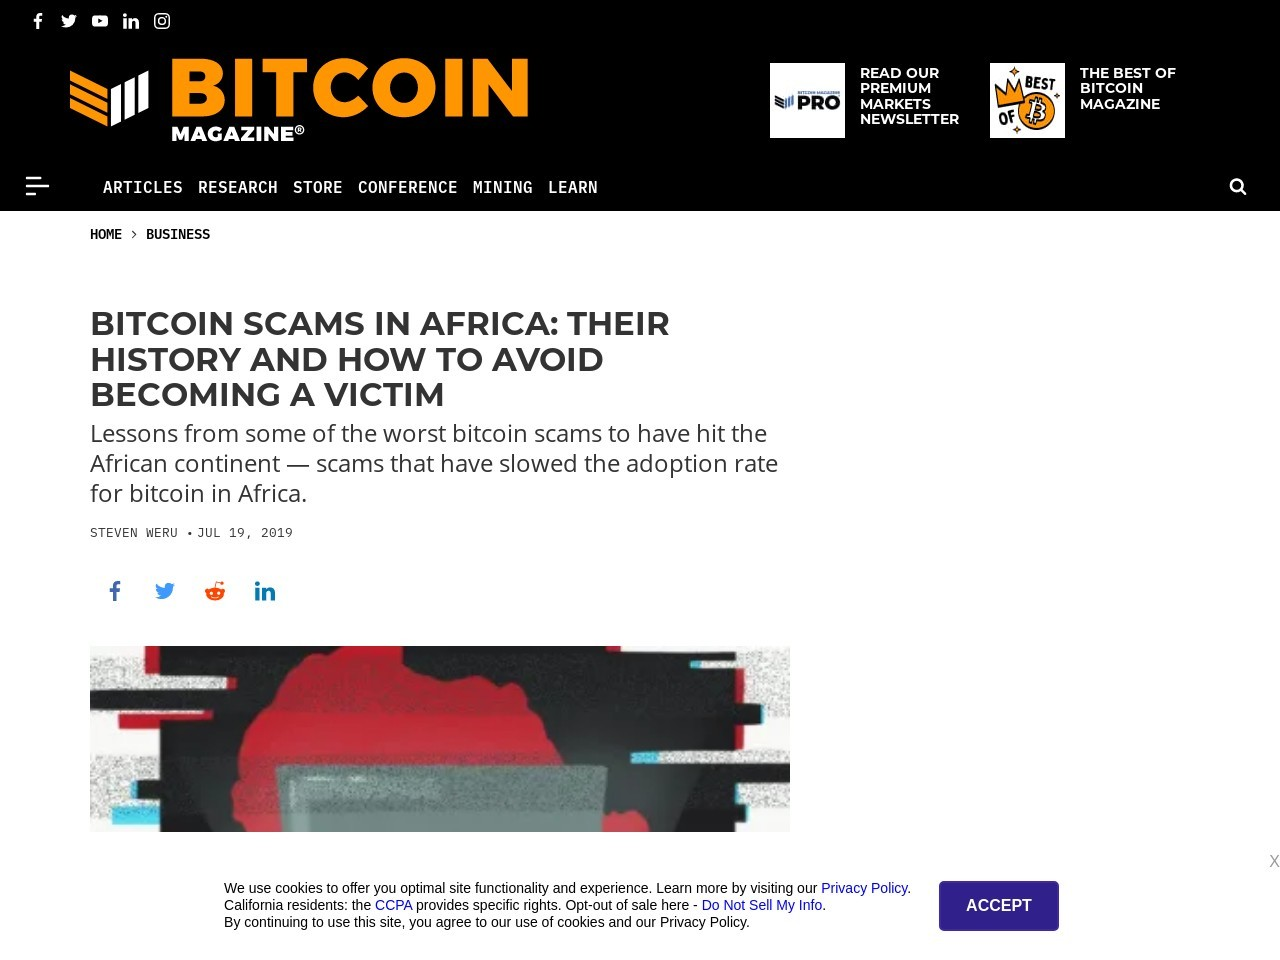 Bitcoin Scams in Africa: Their History and How to Avoid Becoming a Victim